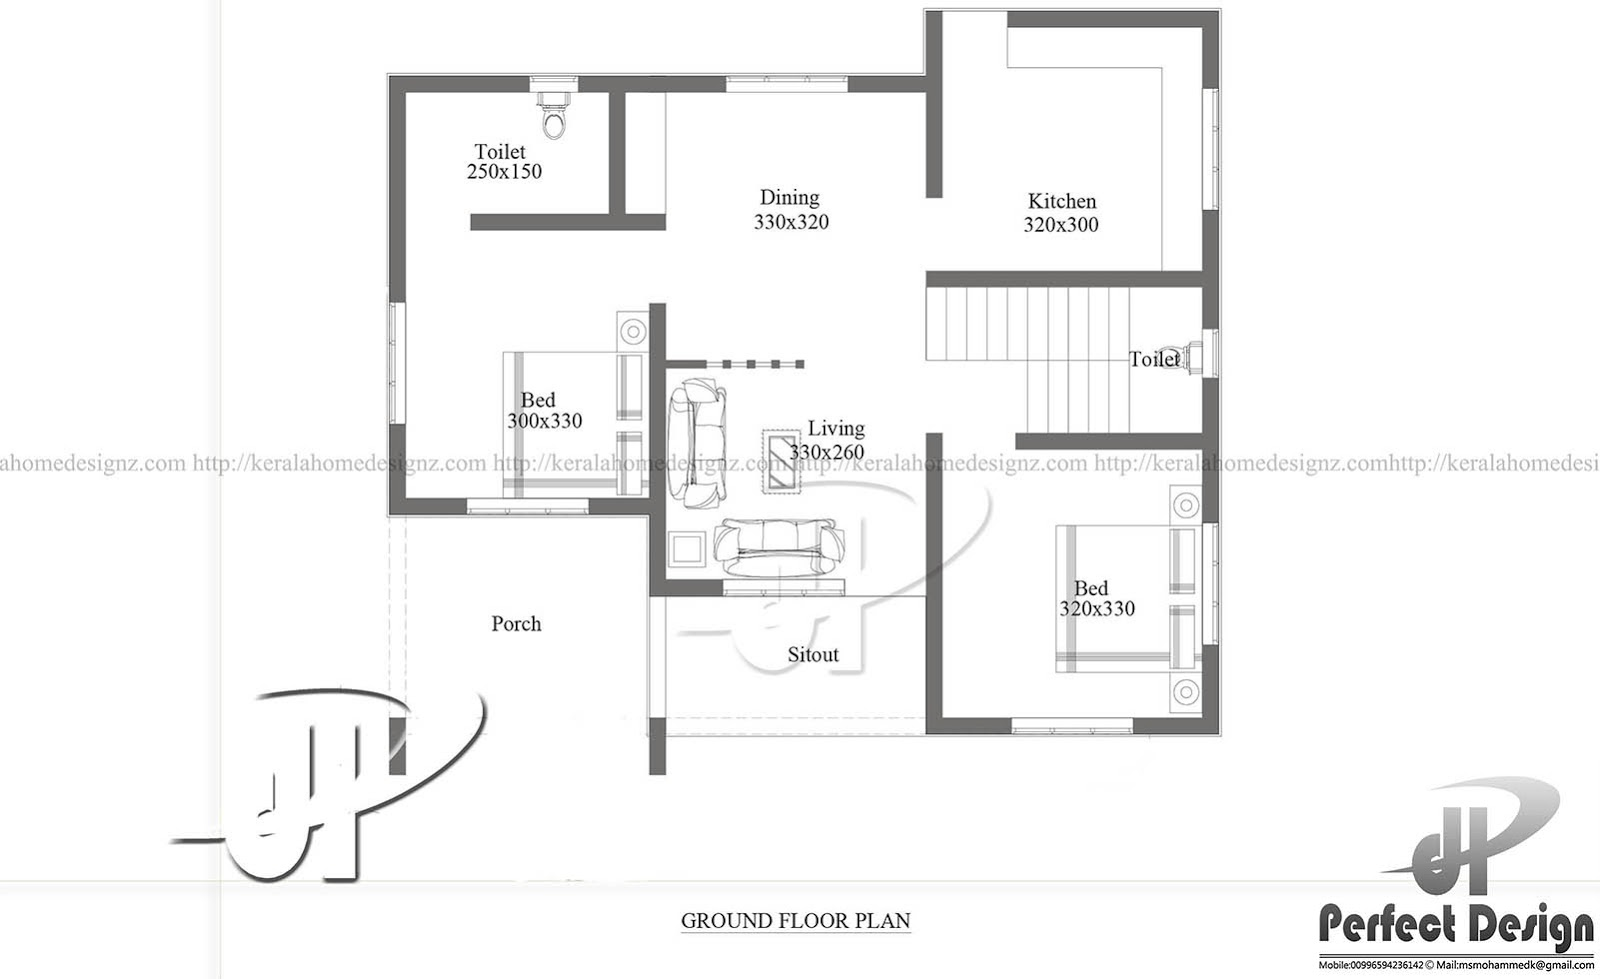 Thoughtskoto Jpg 1600x979 90 Square Feet House Plans